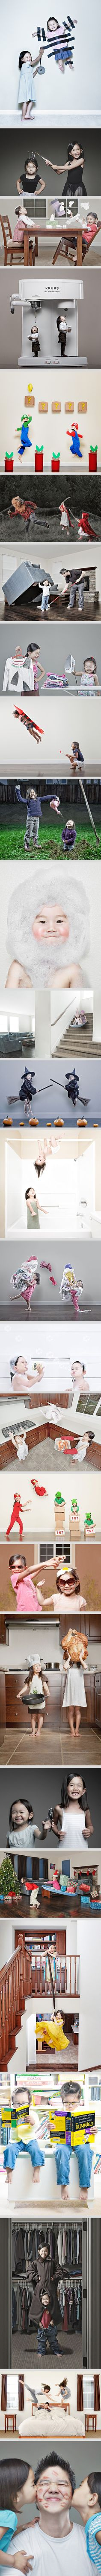 Dad Takes Crazy Photos Of Daughters http://www.boredpanda.com/creative-kids-photography-jason-lee/